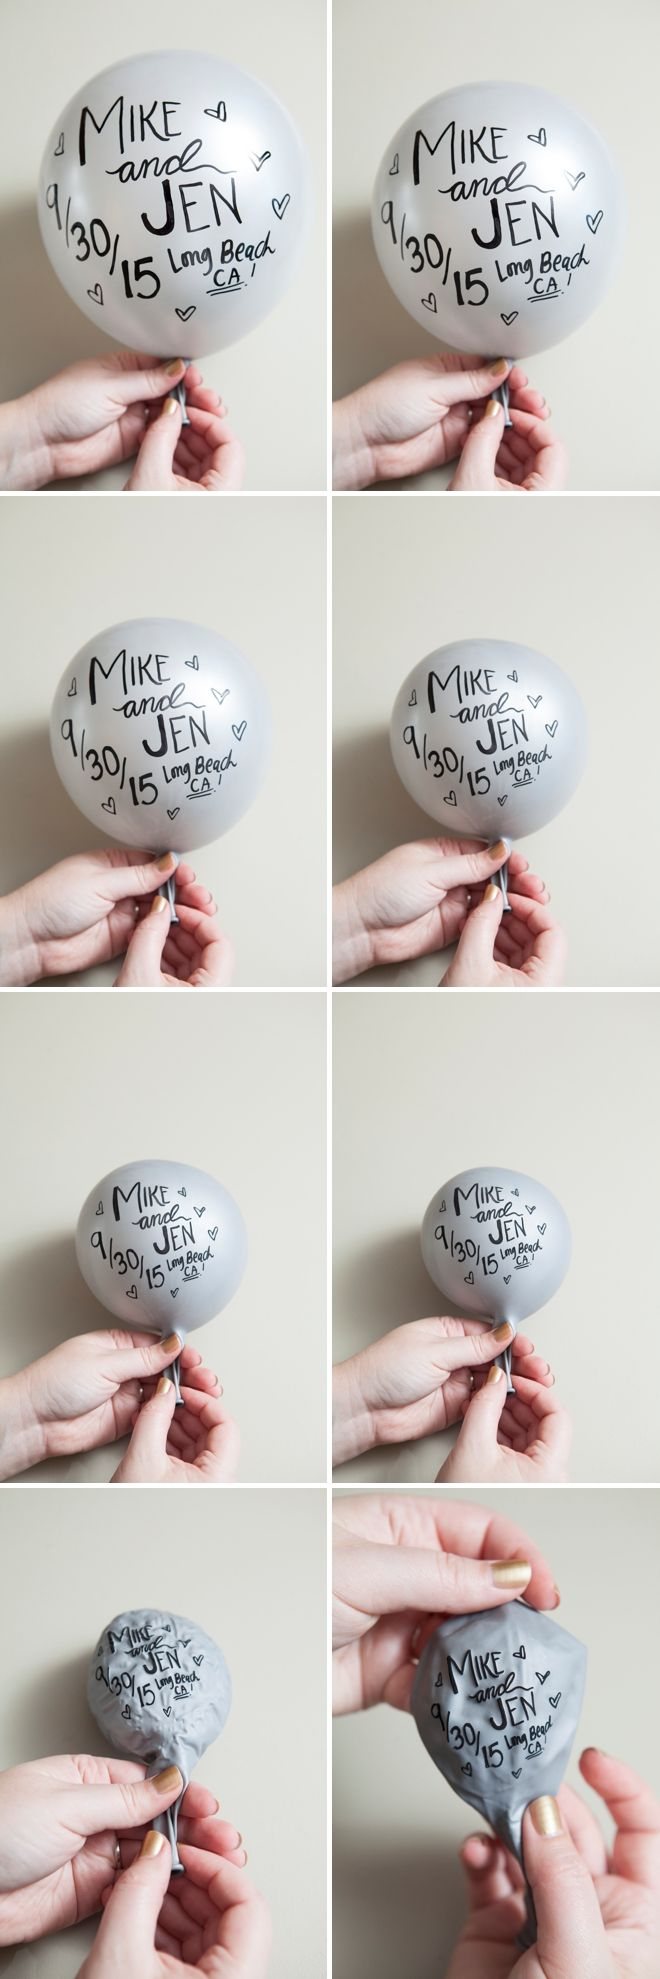 DIY - Sharpie Balloon Save the Date Invitation + FREE download and print files!